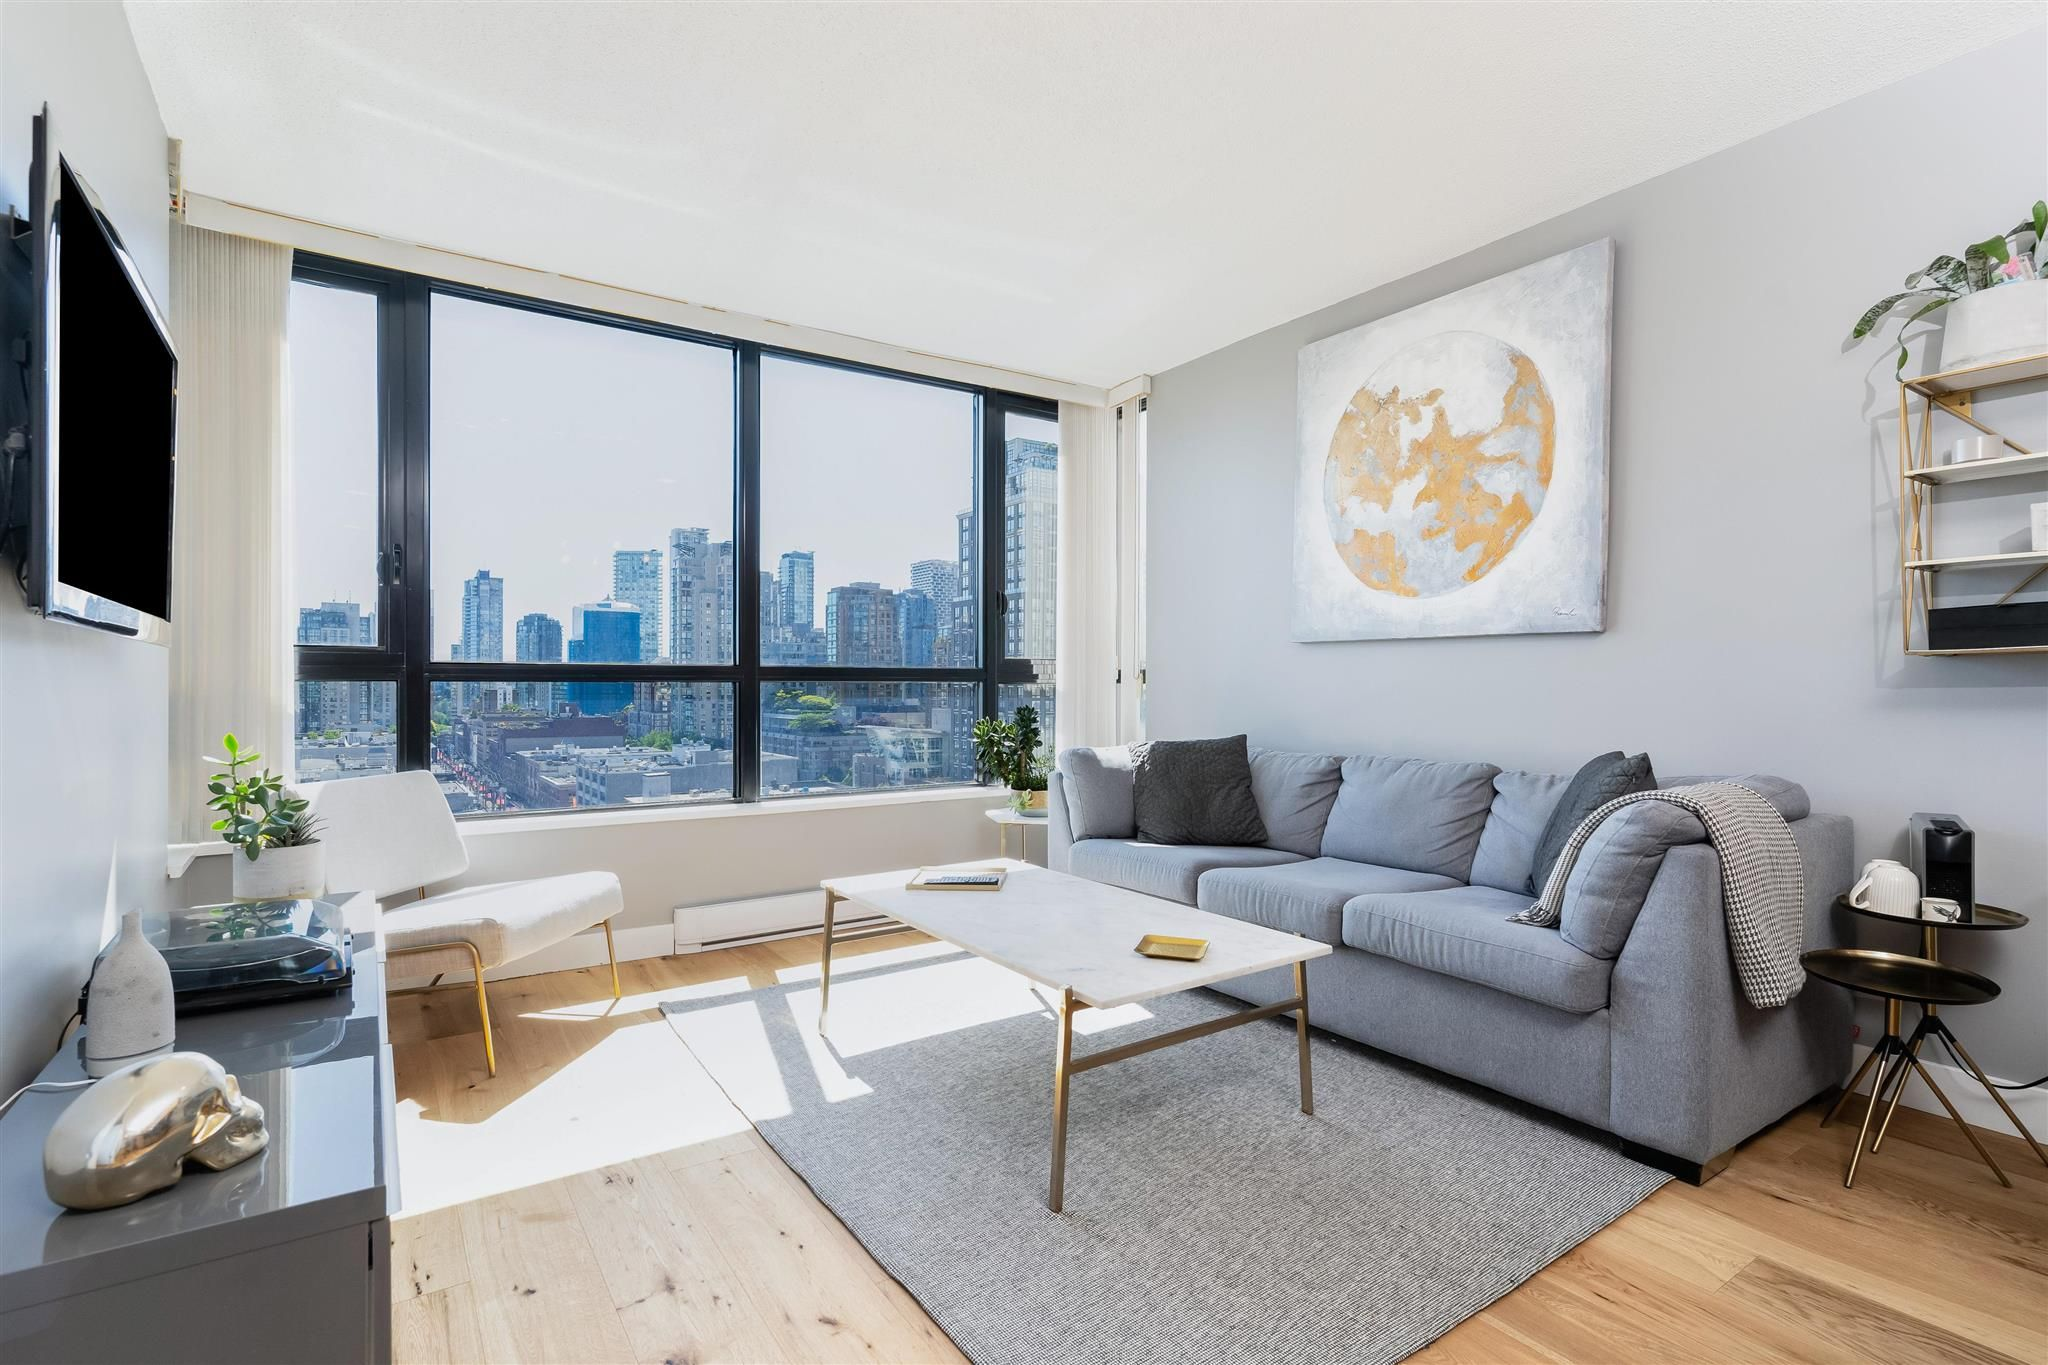 """Main Photo: 1409 977 MAINLAND Street in Vancouver: Yaletown Condo for sale in """"YALETOWN PARK 3"""" (Vancouver West)  : MLS®# R2595061"""